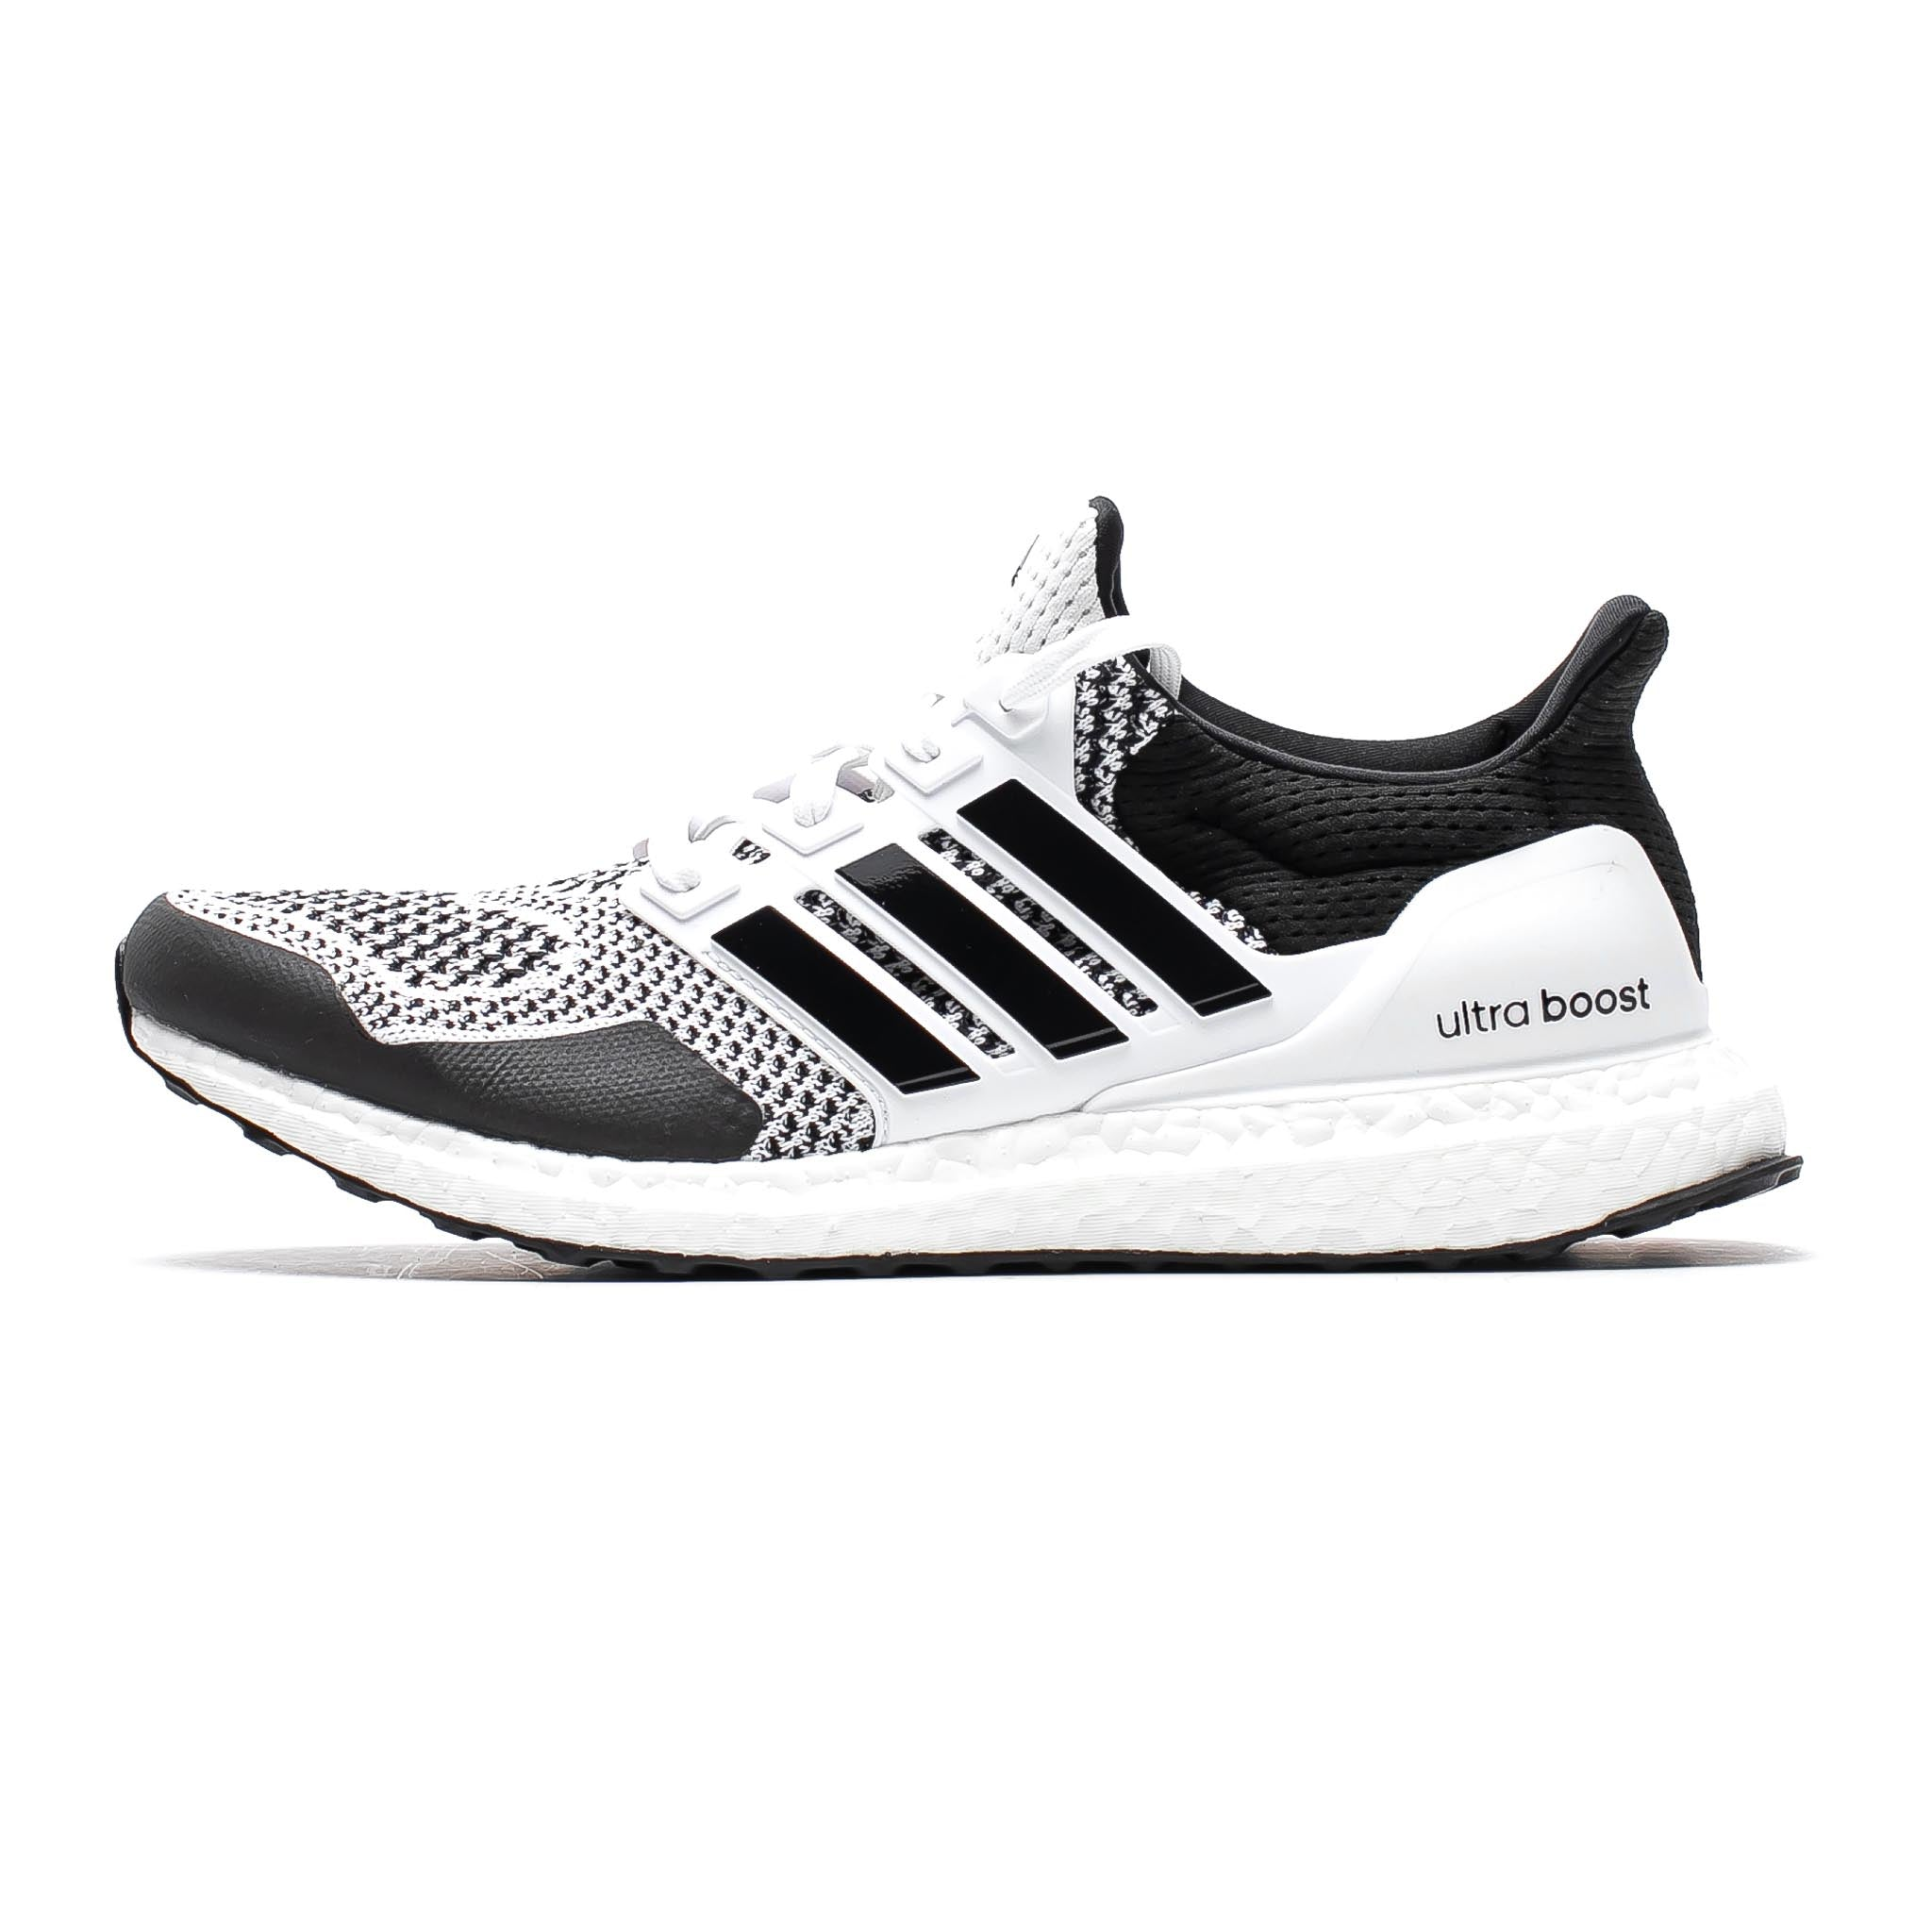 ADIDAS Ultraboost 1.0 DNA 'Cloud White/Core Black'